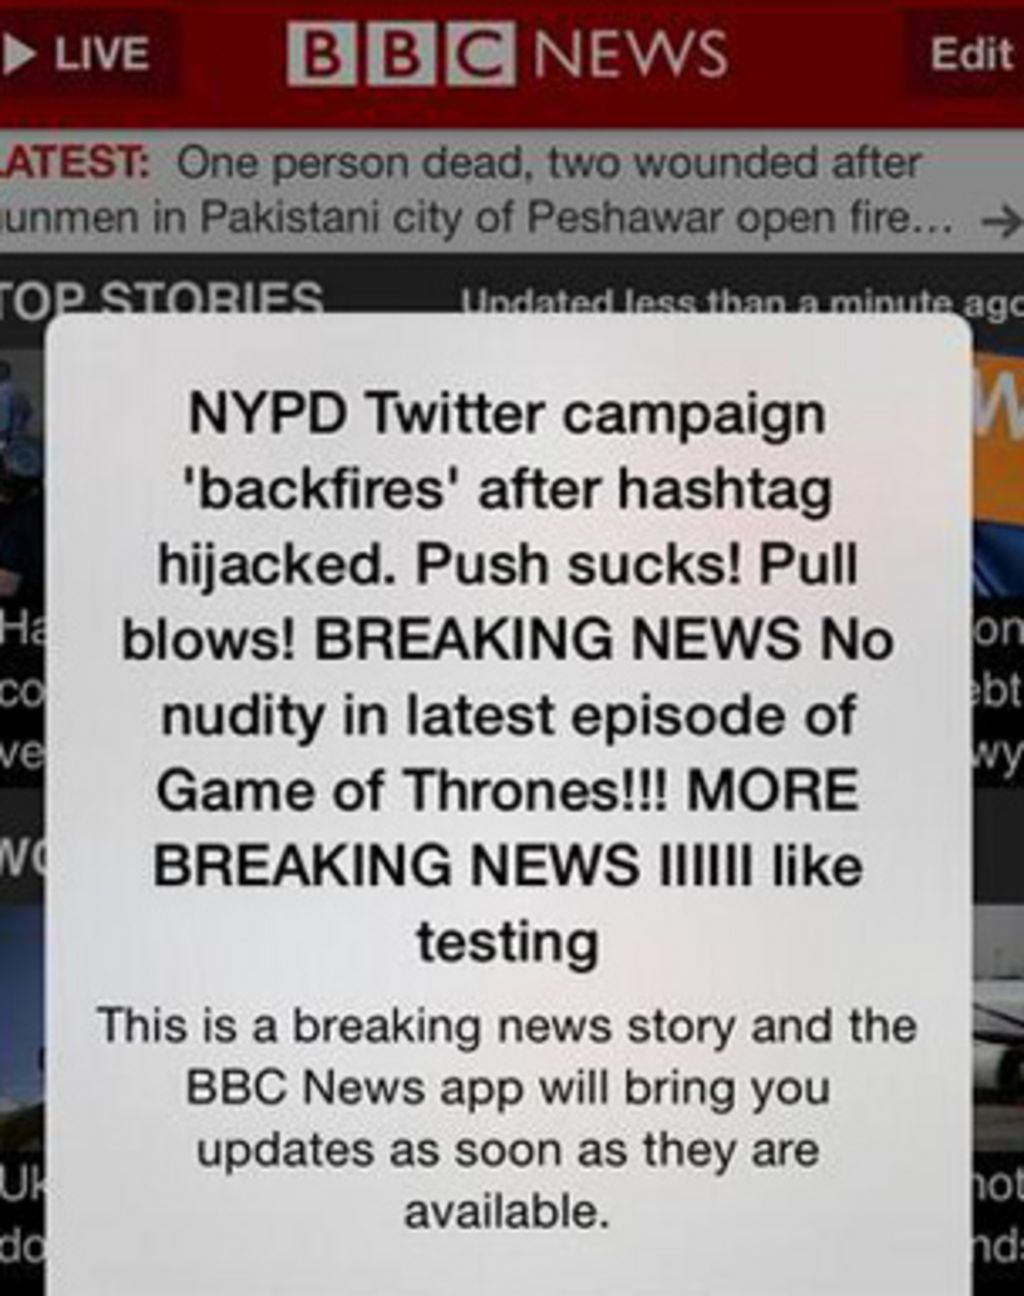 BBC apologises after news alerts sent in error - BBC News